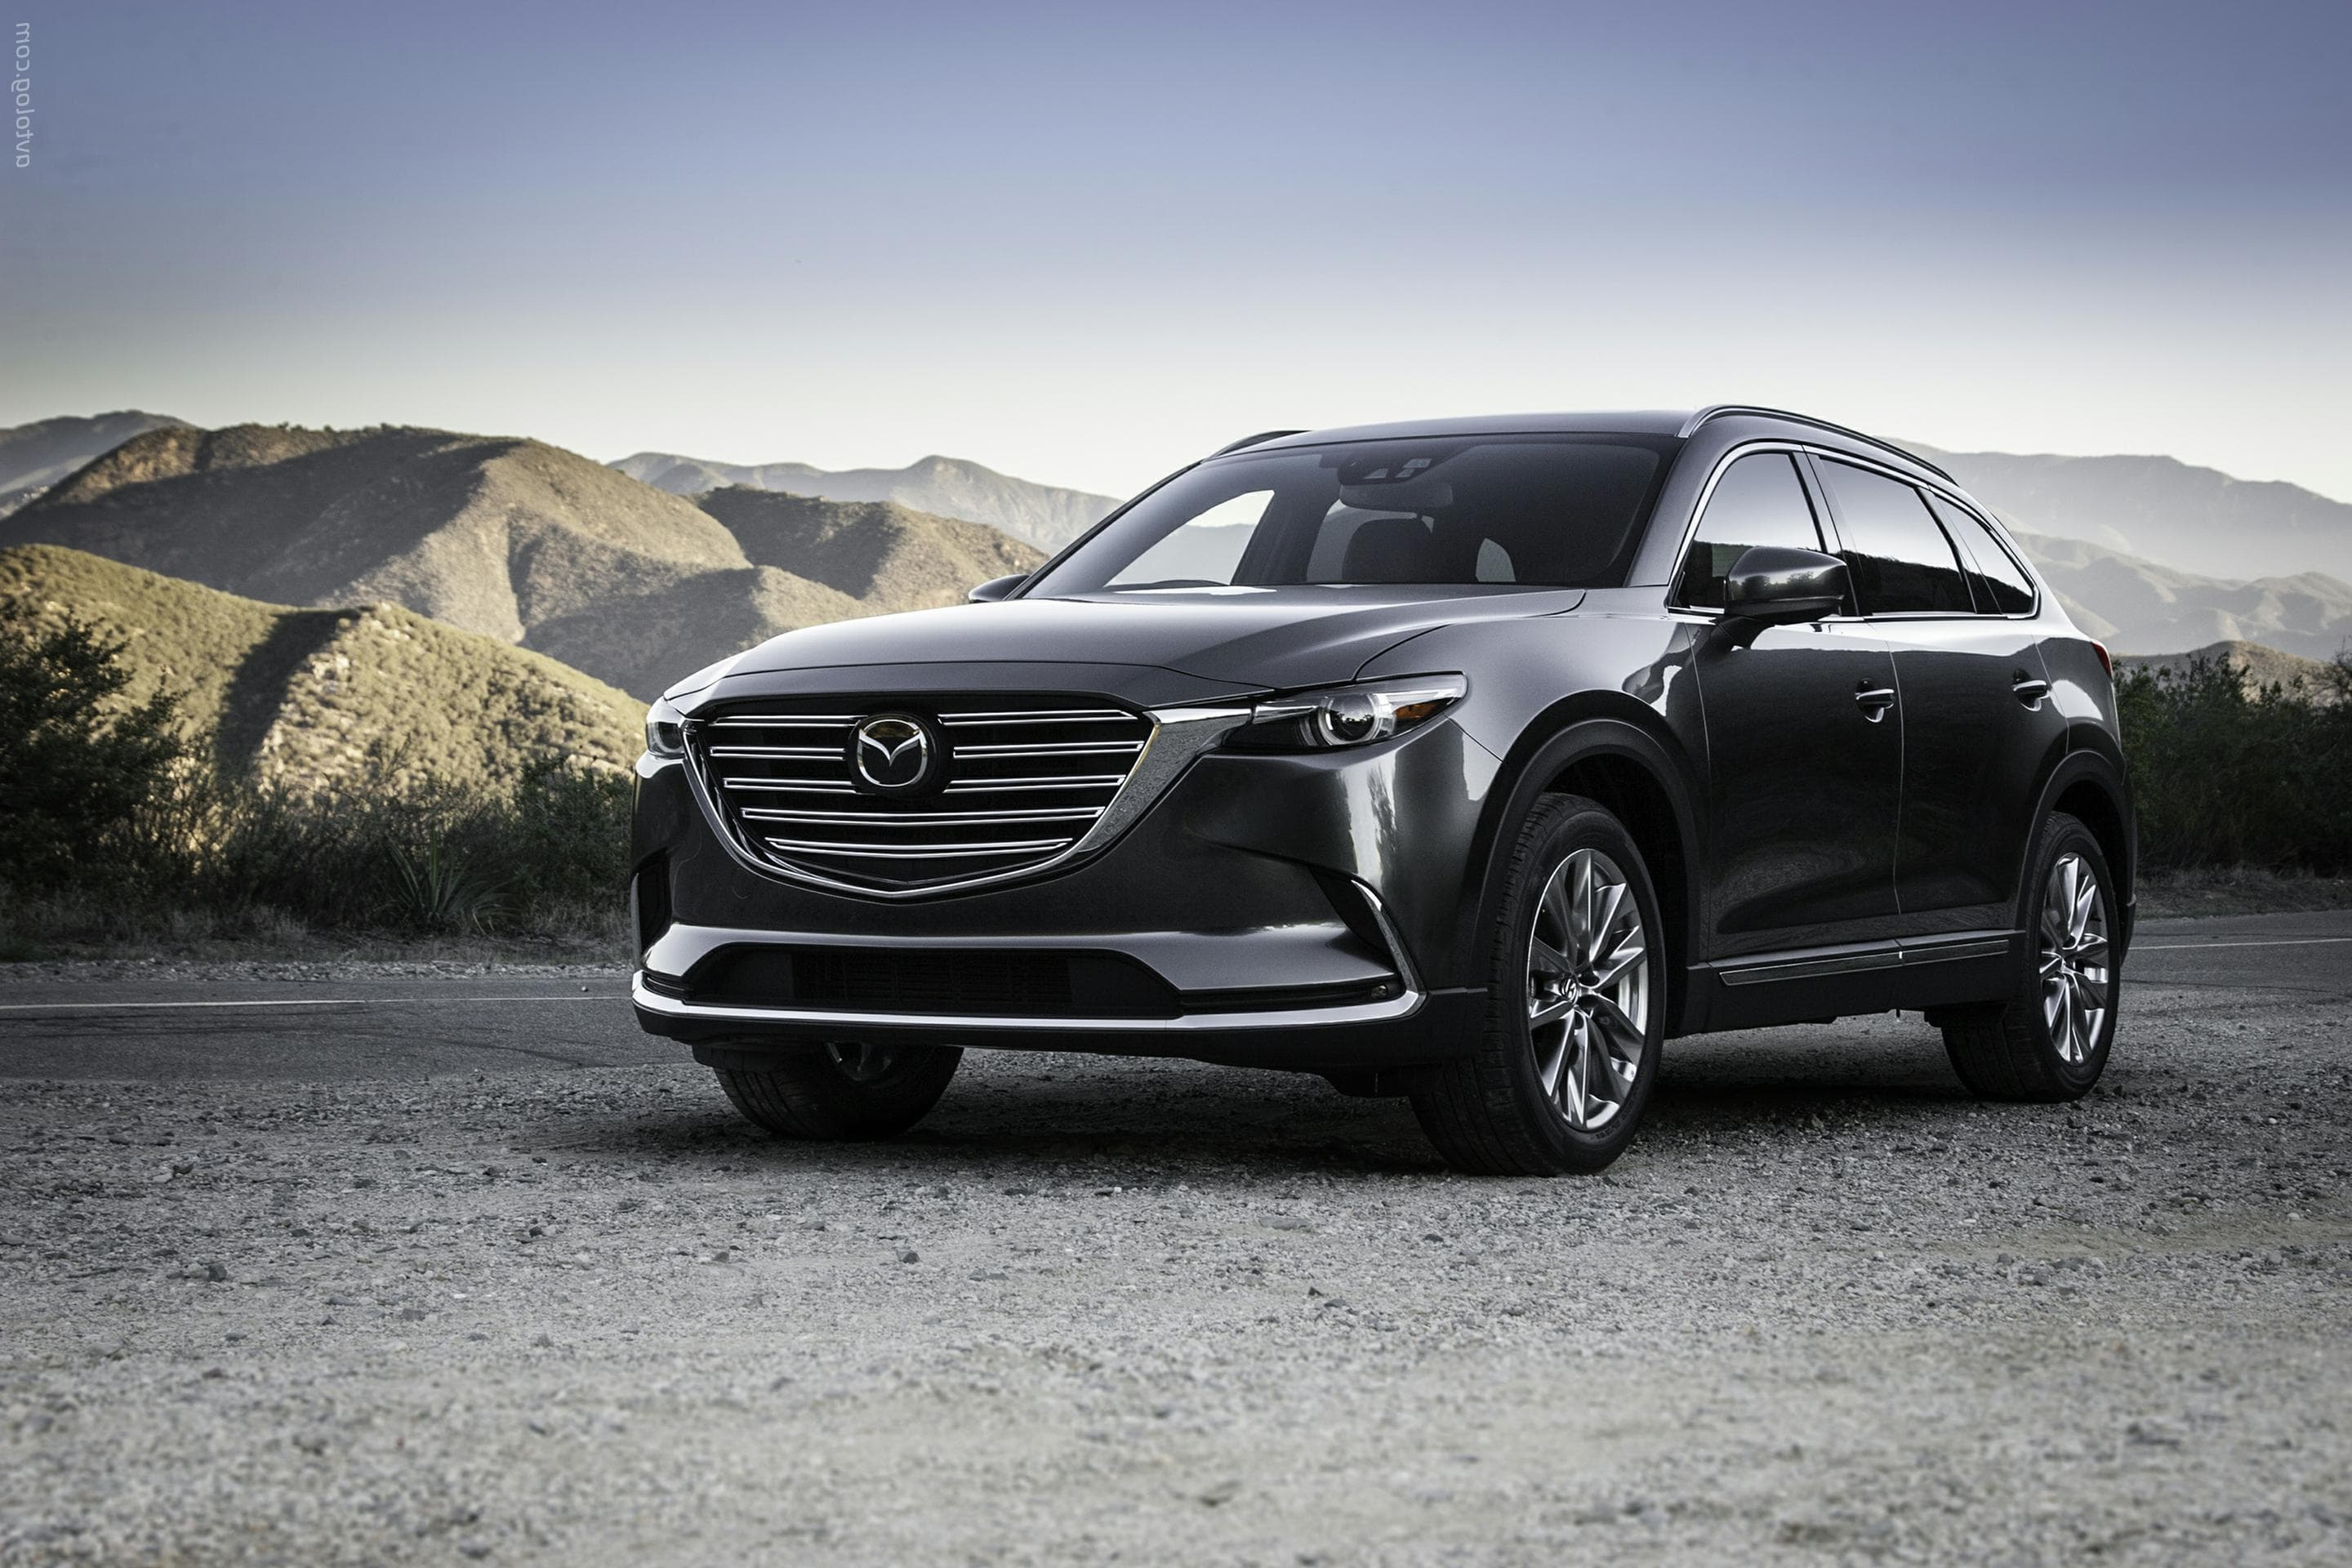 2016 Mazda Cx 9 Wallpapers Hd High Quality Resolution Download